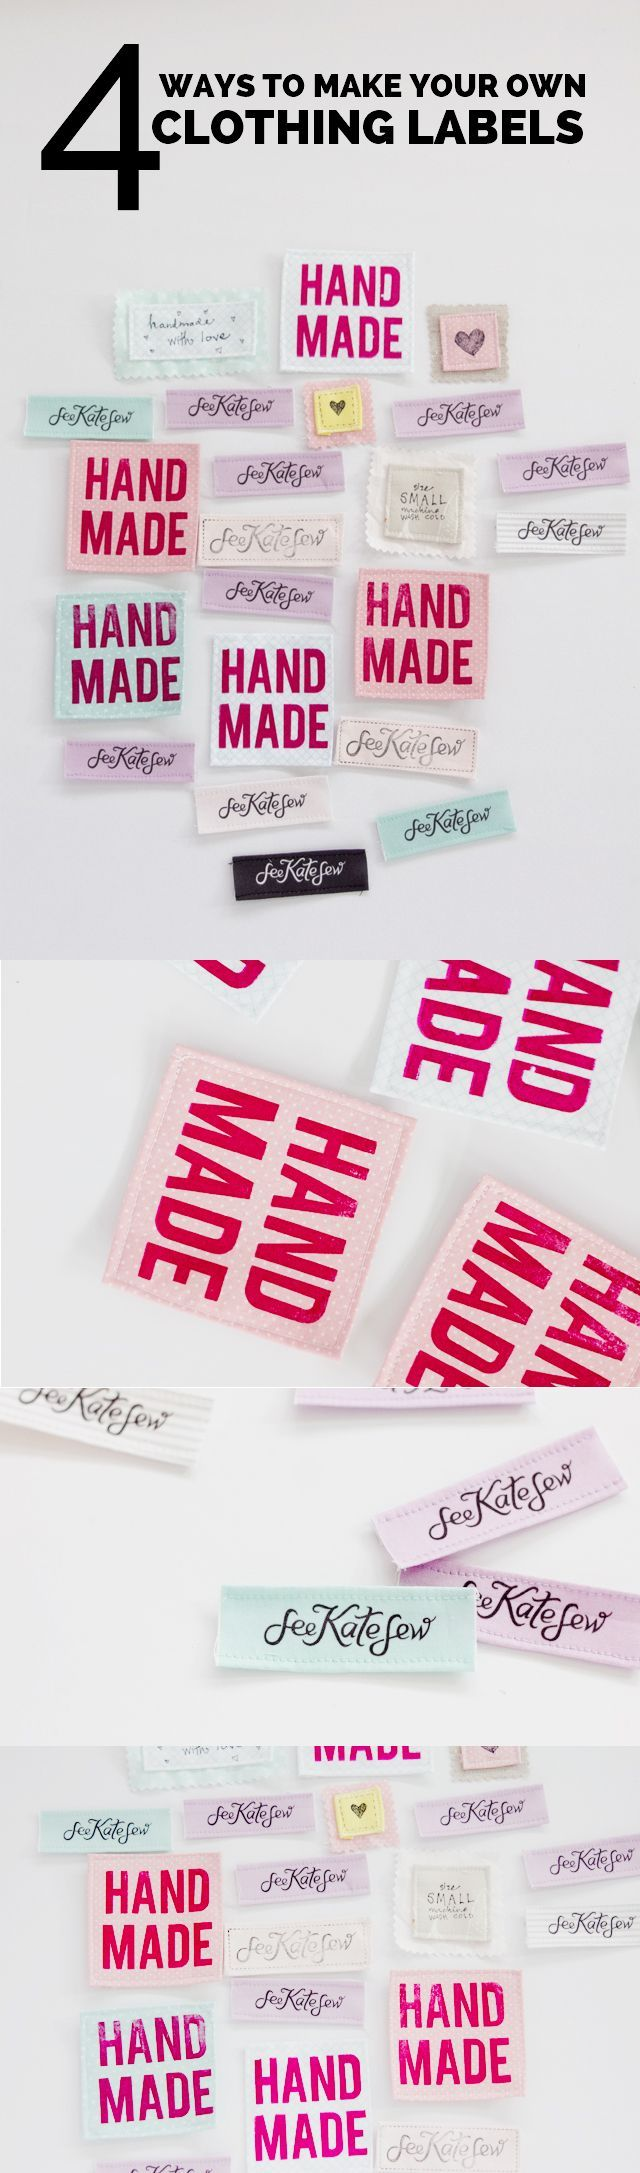 DIY SEWING LABELS | make your own clothing labels | handmade clothing labels | sewing tips and tricks || See Kate Sew #diysewinglabels #sewinglabels #sewingtips